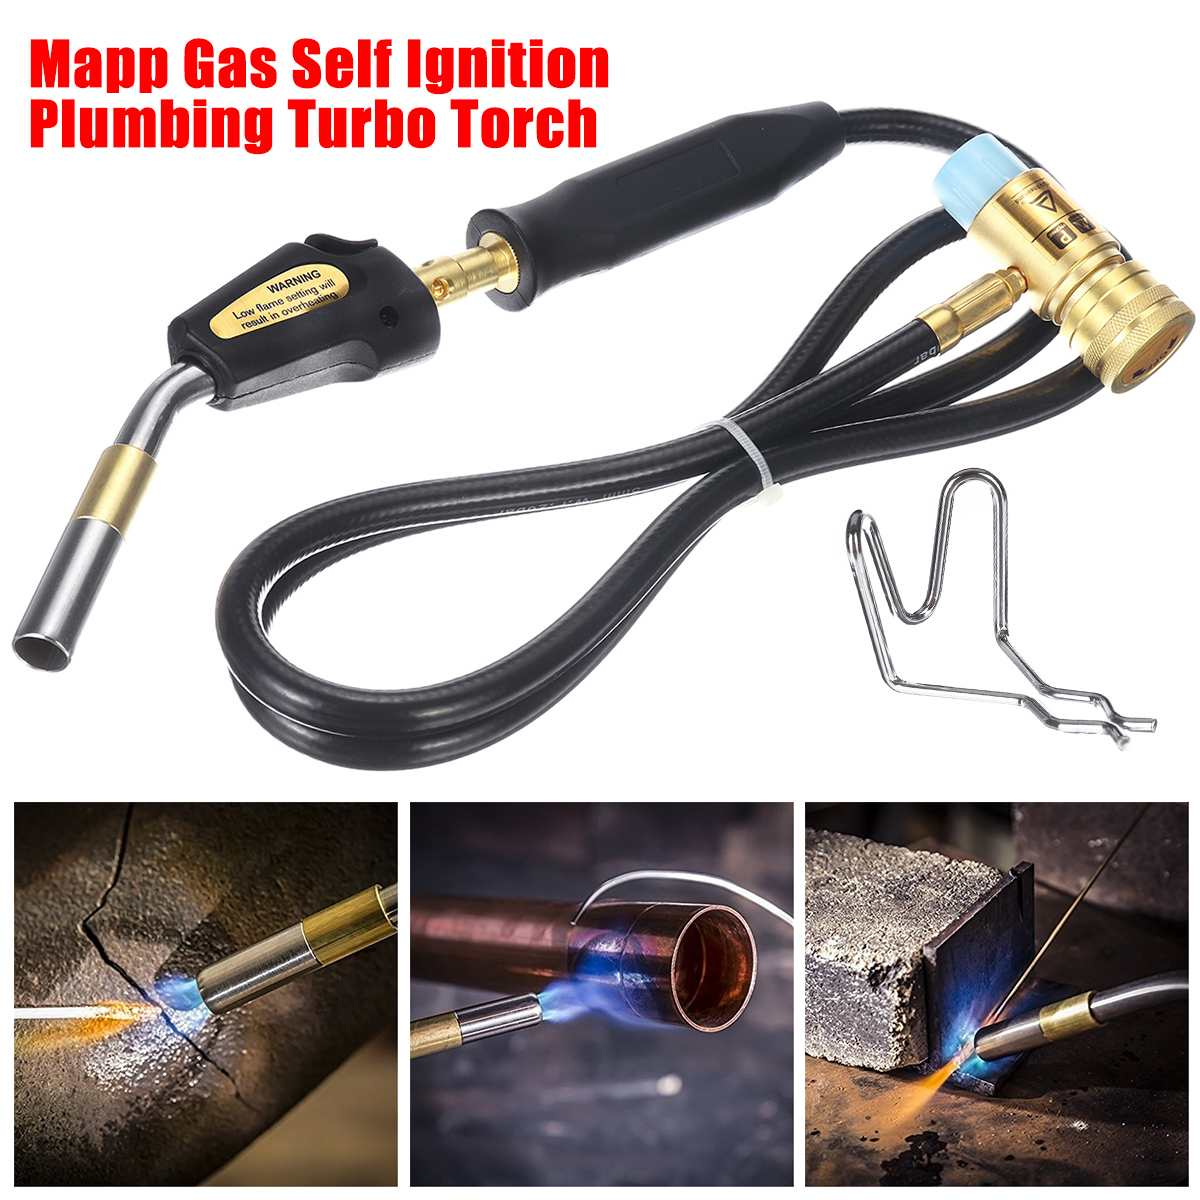 Electronic Ignition Liquefied Gas Welding Torch Kit Mapp Gas Self Ignition Plumbing Solder Propane Welding Turbo Torch W  Hose